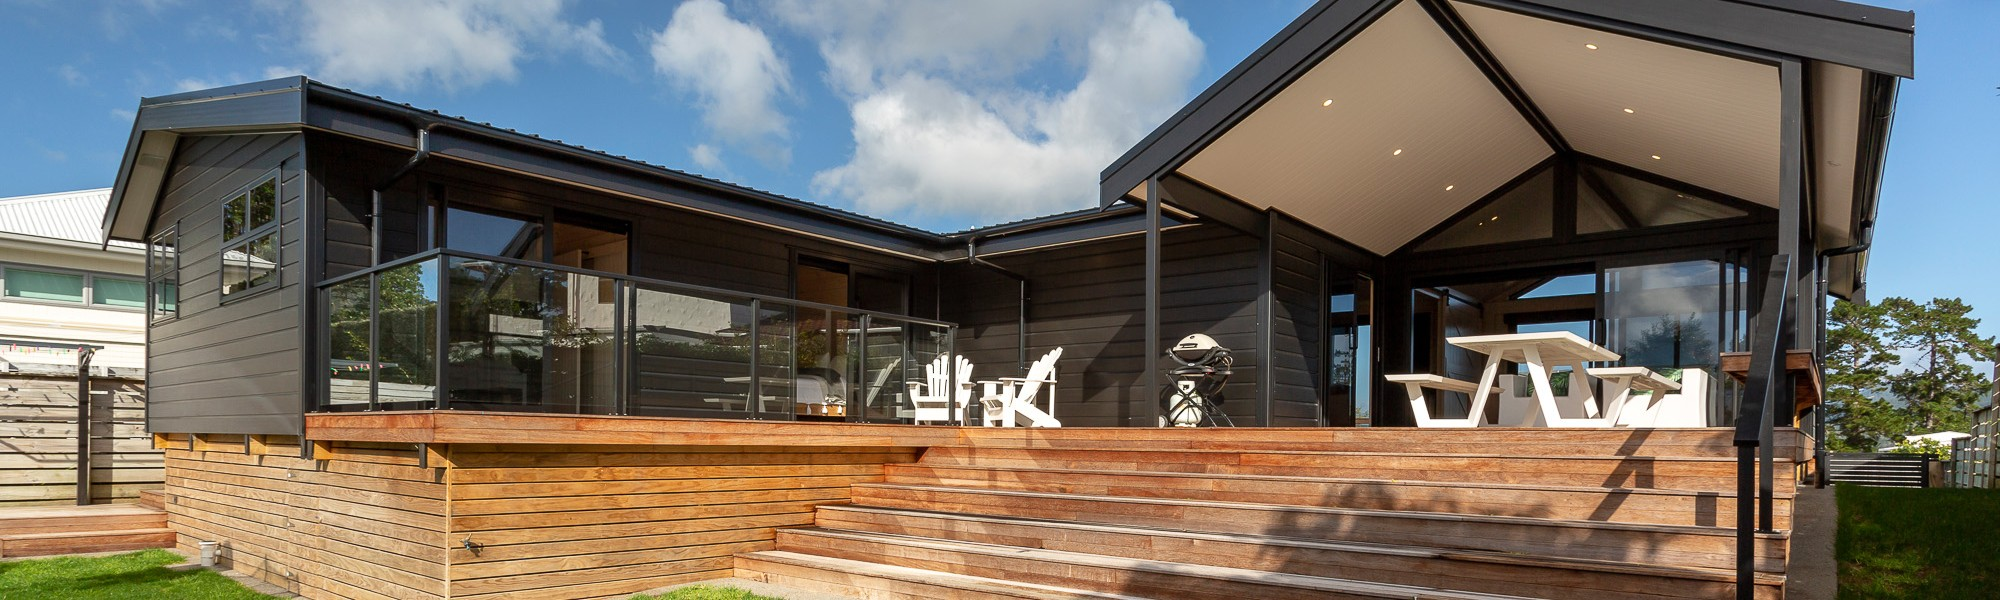 Mullan Family Holiday Home image 11